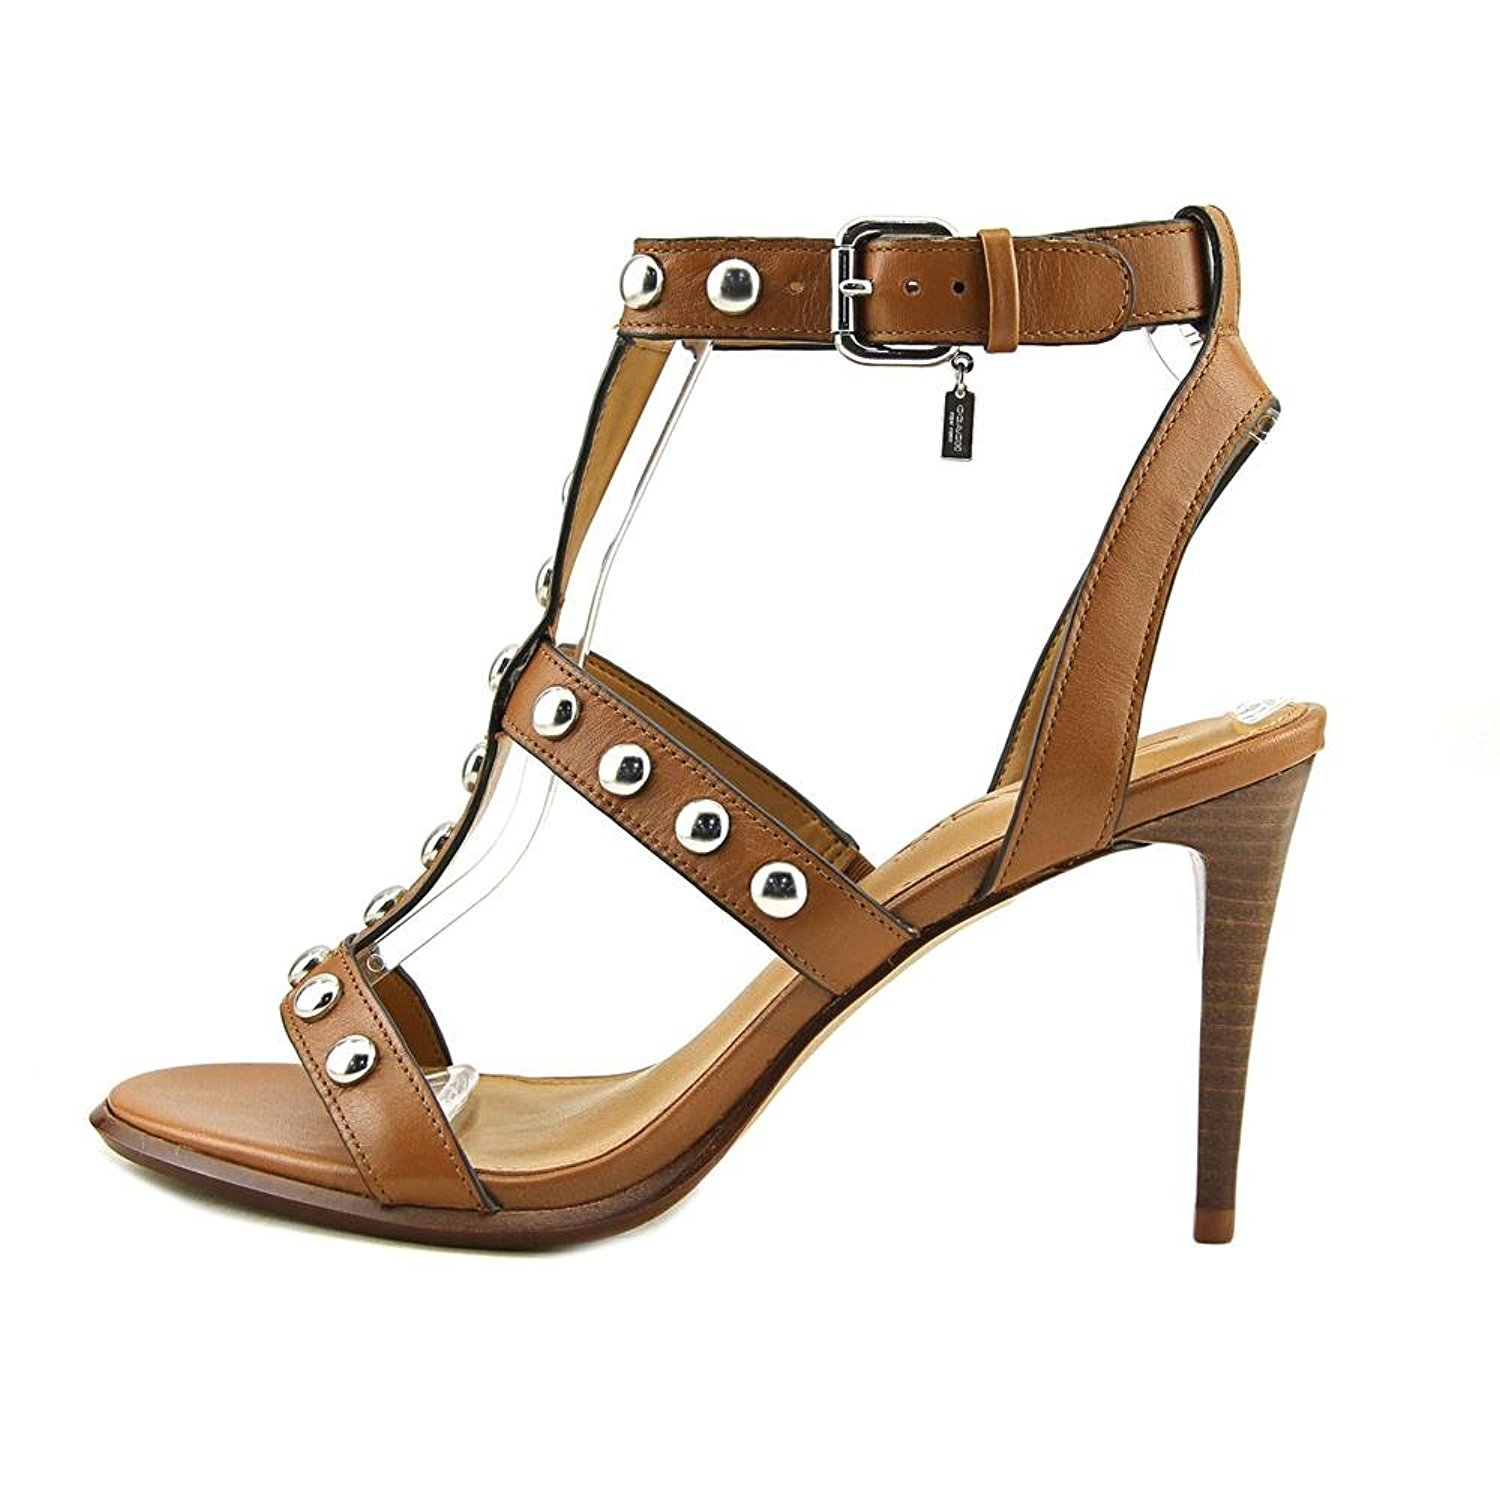 552e90077de2 Coach Womens Isabell II Leather Open Toe Casual Strappy Sandals